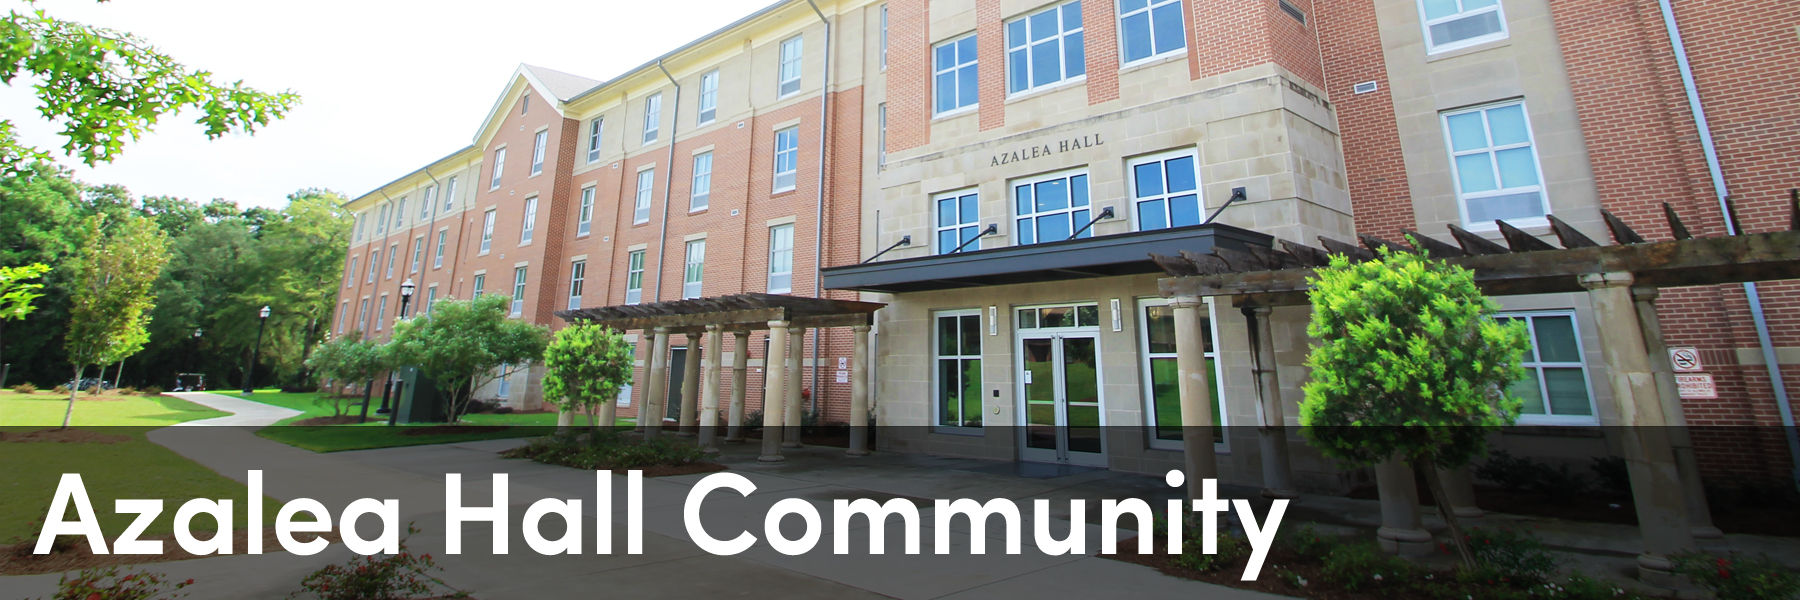 Azalea Hall Community